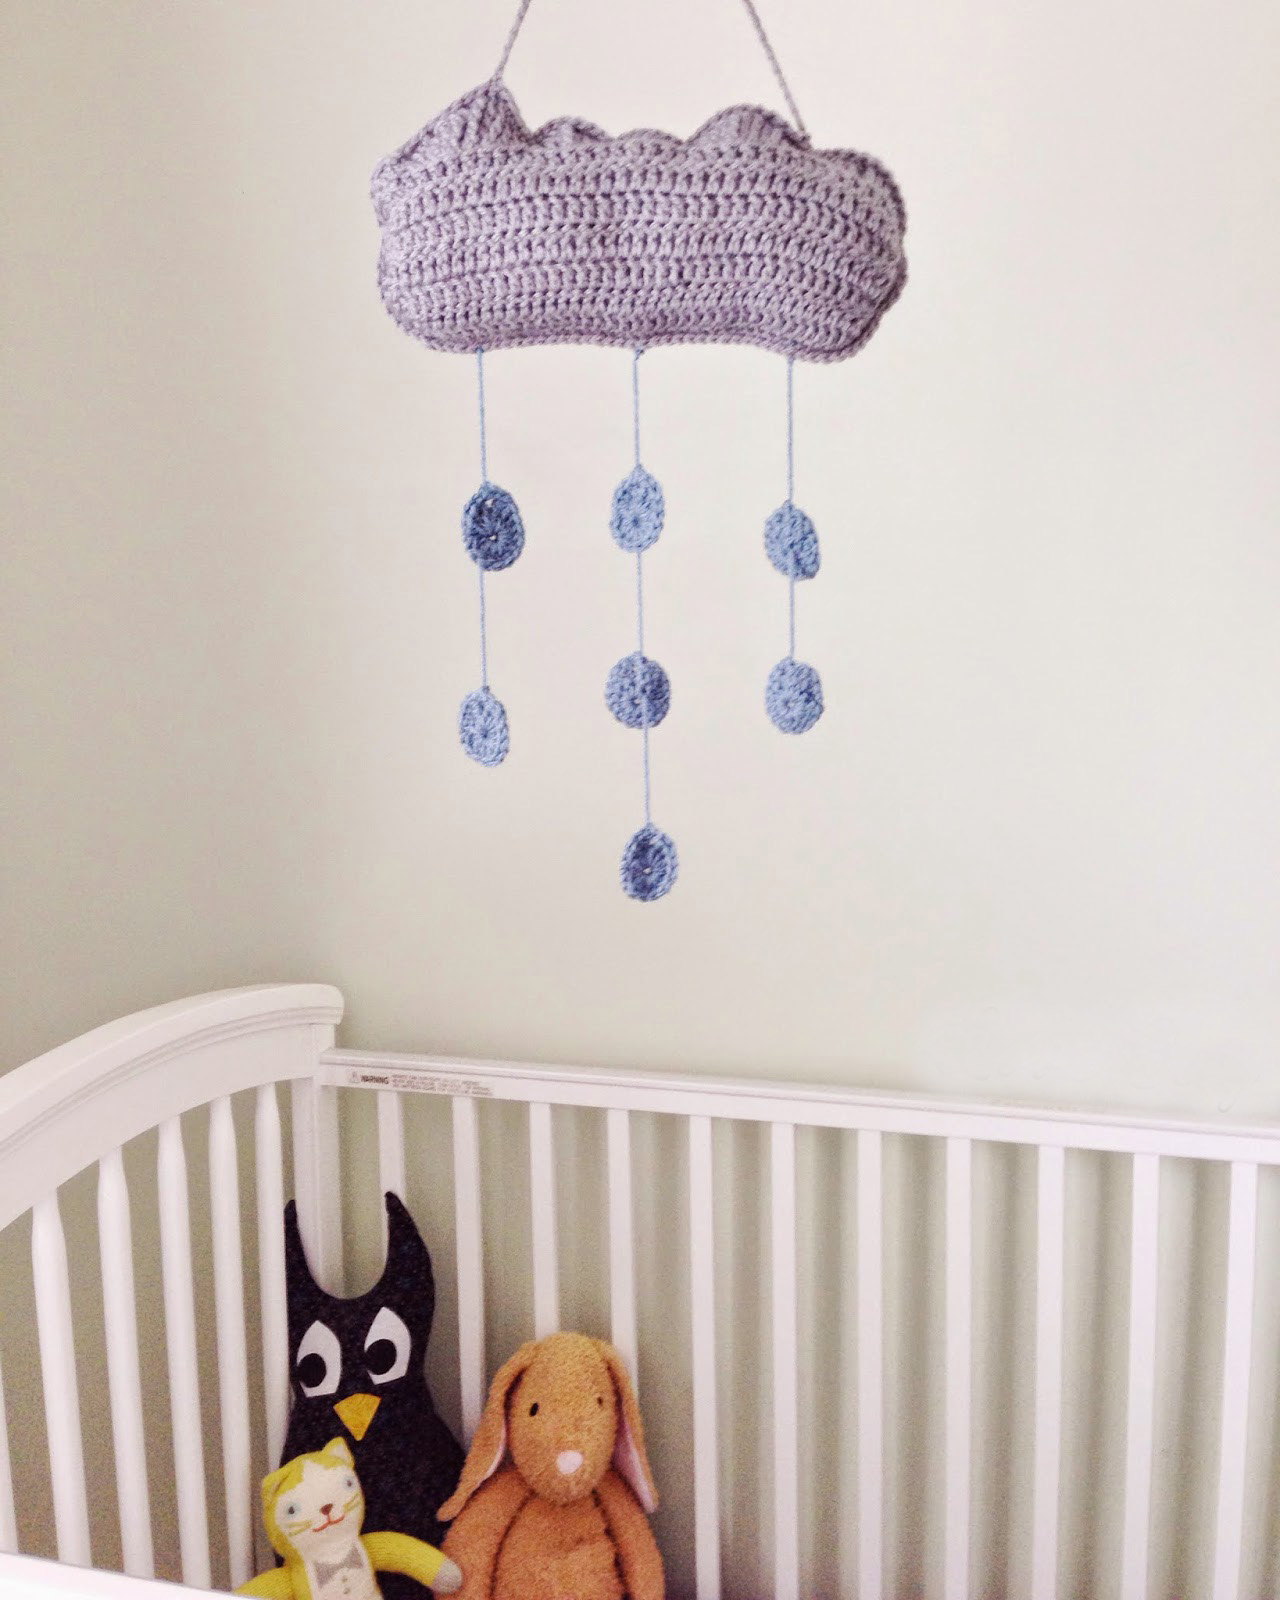 Clouds and Raindrops Nursery Mobile - Crochet baby mobiles are colorful, fun and creative. Grab your hook and your favorite type of yarn, and get started on a baby mobile for someone you know. #CrochetBabyMobiles #CrochetPatterns #FreeCrochetPatterns